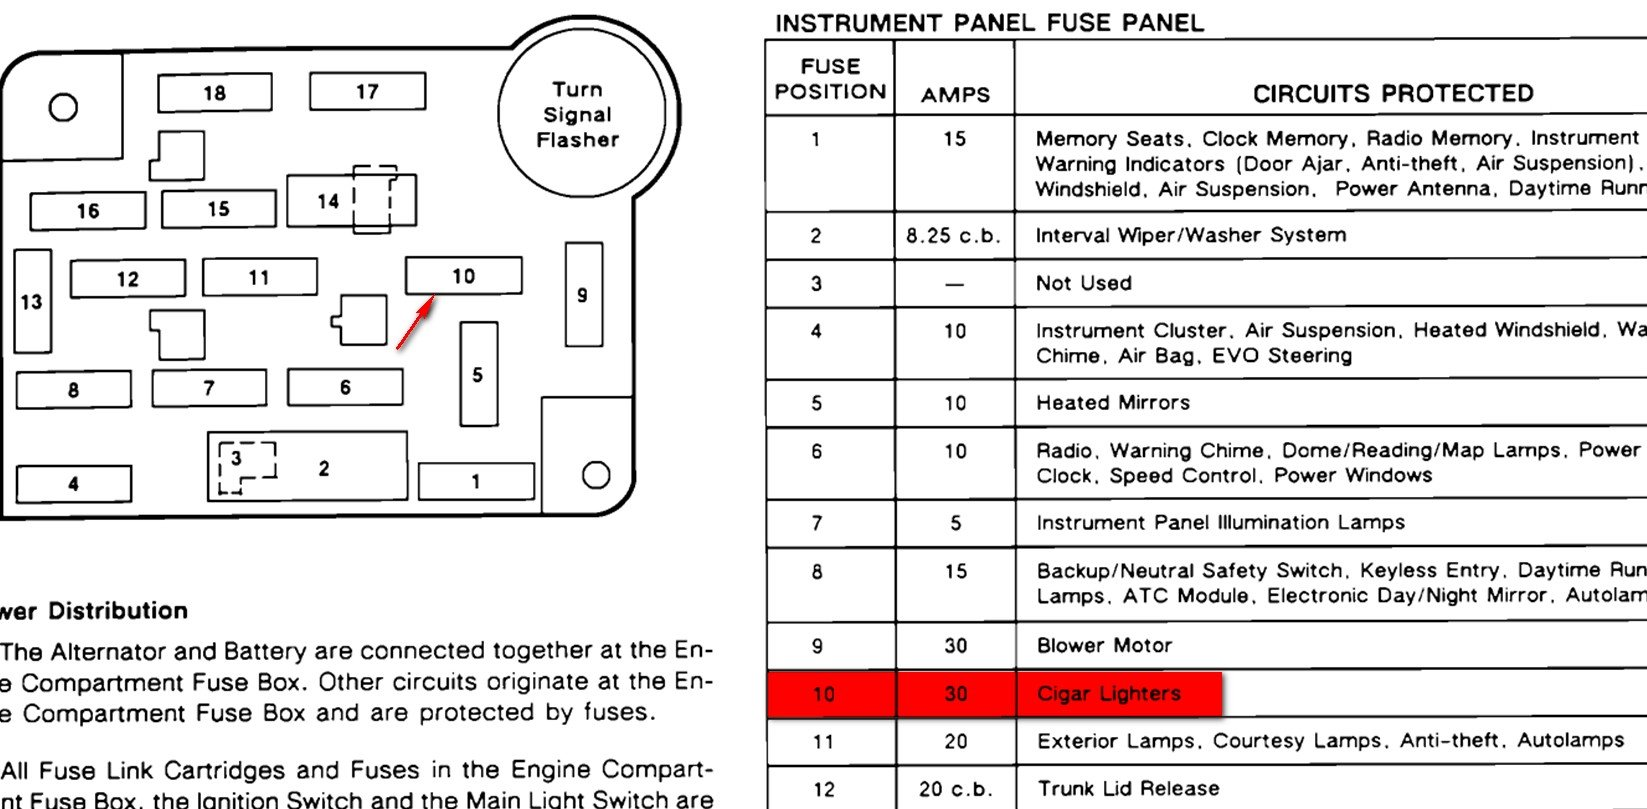 96 Lincoln Continental Fuse Box Diagram Wiring Schematic For 1997 Jeep Grand Cherokee Simple Acura Integra